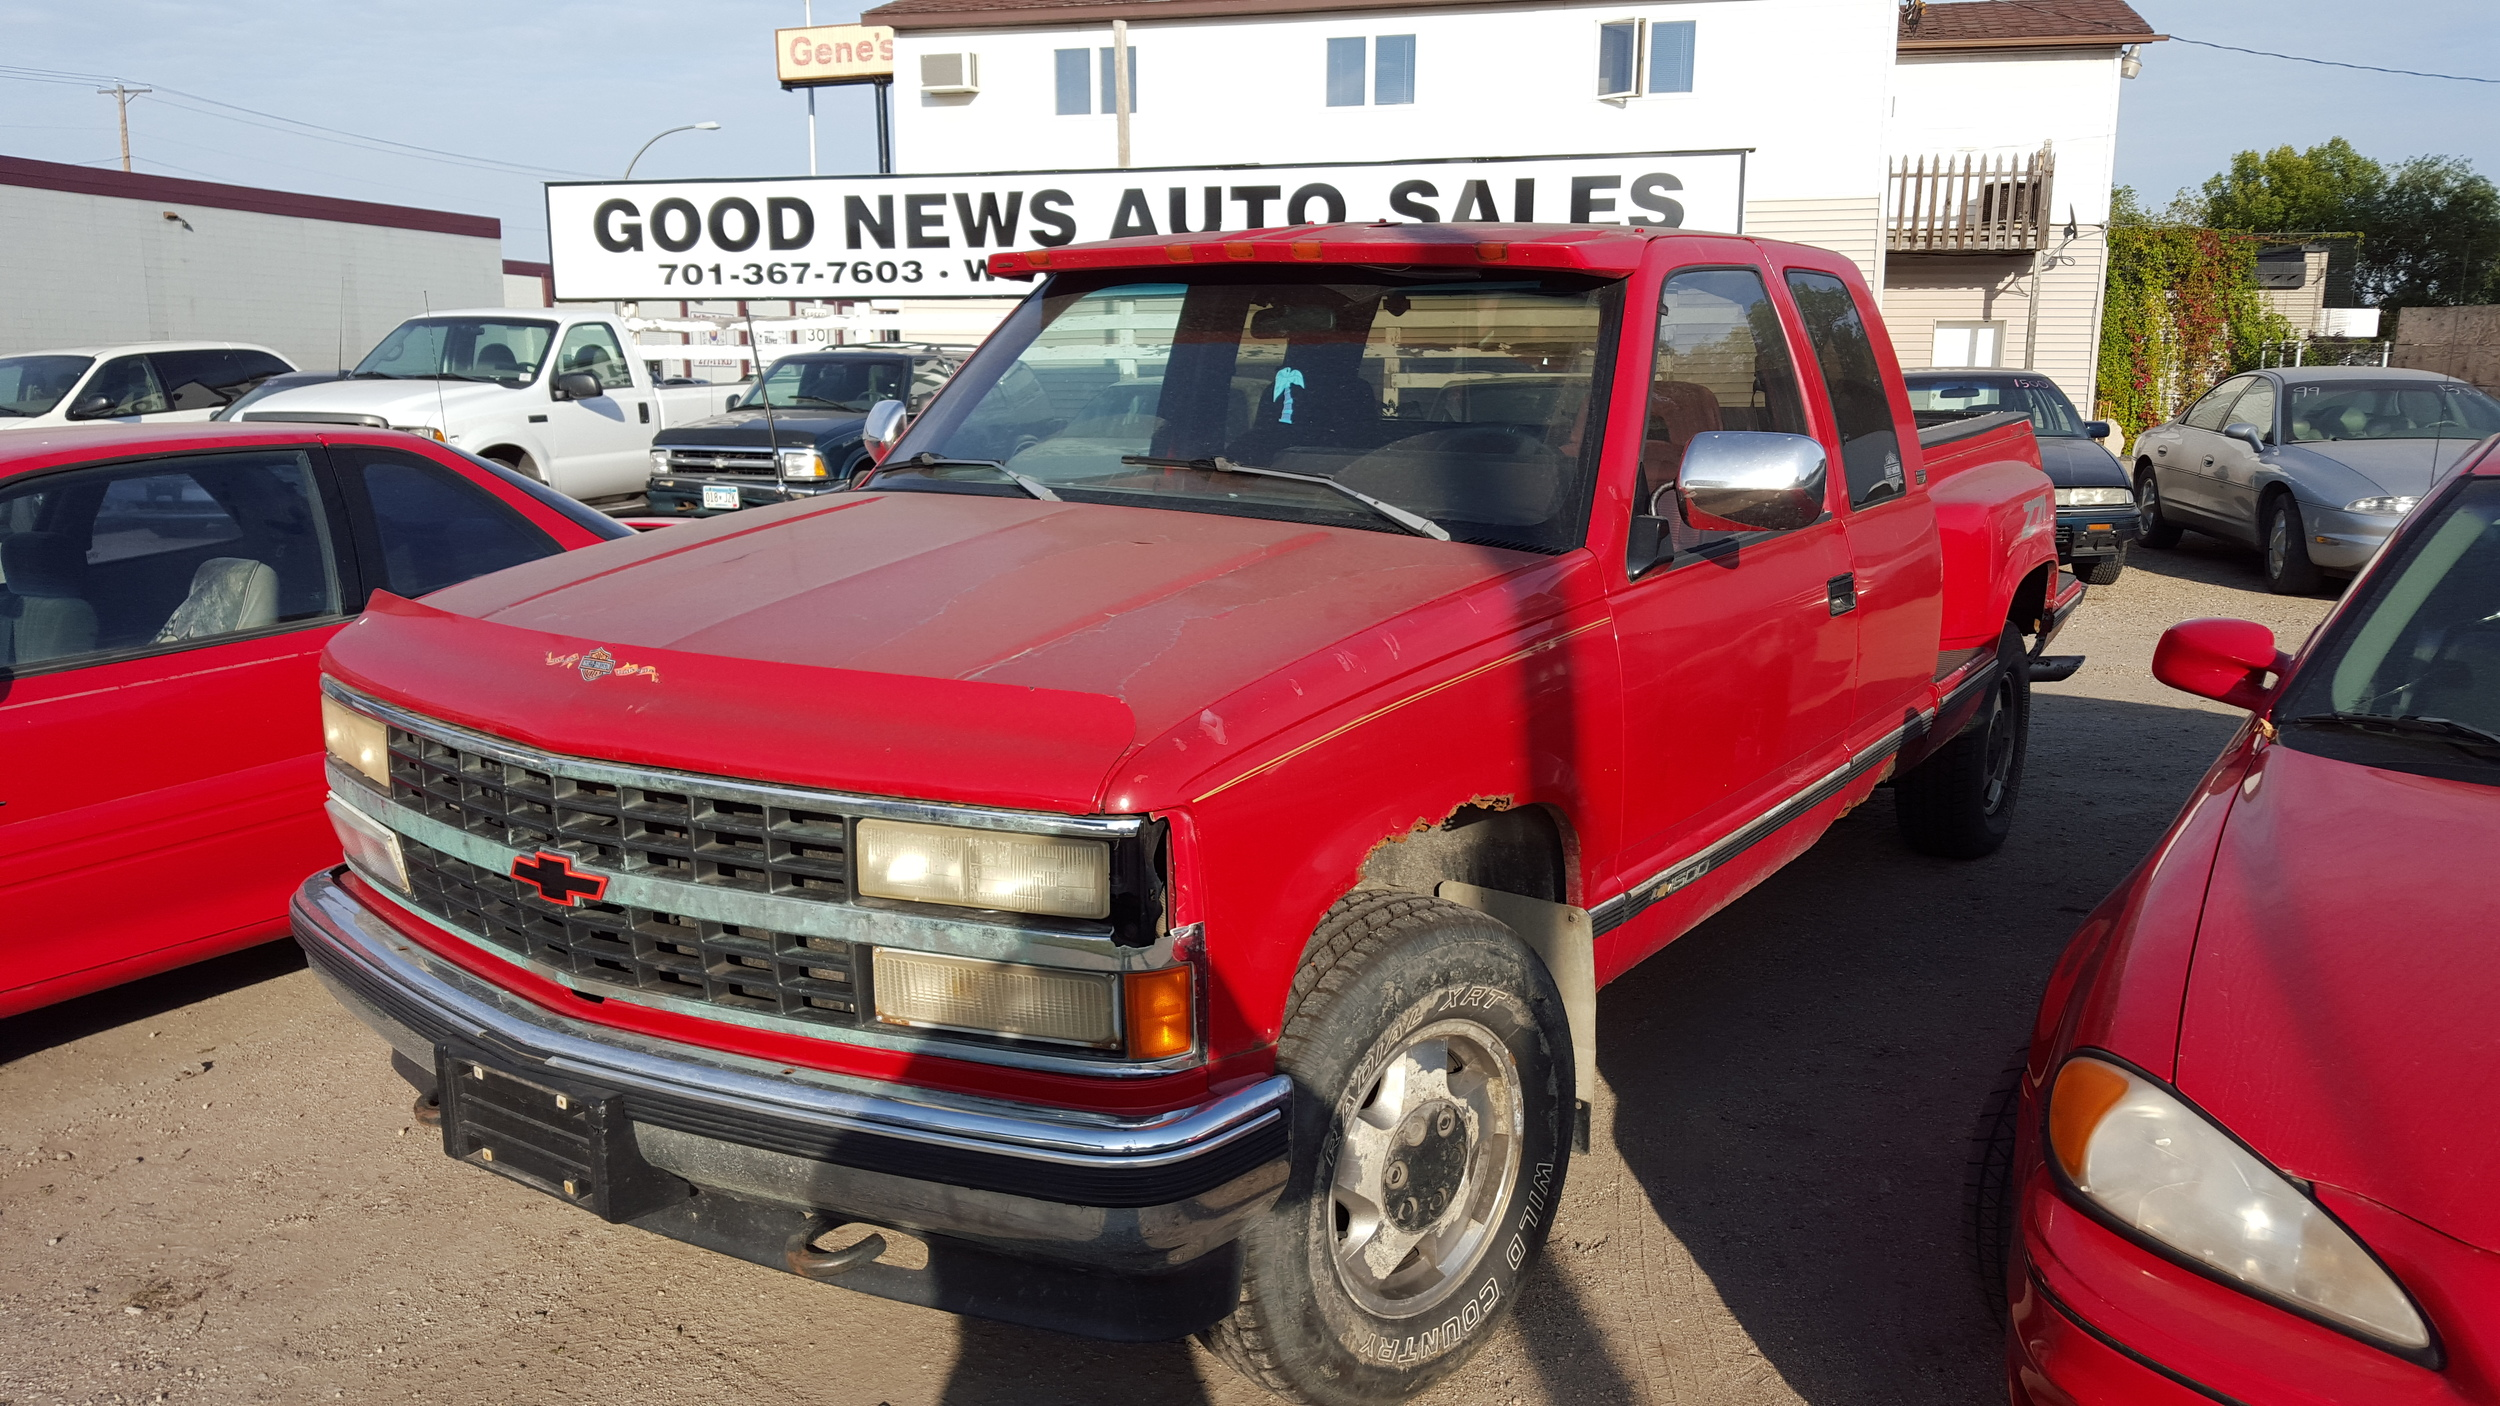 1992 chevy k1500 ext cab stepside bed 174k miles pw pl cd 4x4 asking 900 firm [ 2500 x 1406 Pixel ]